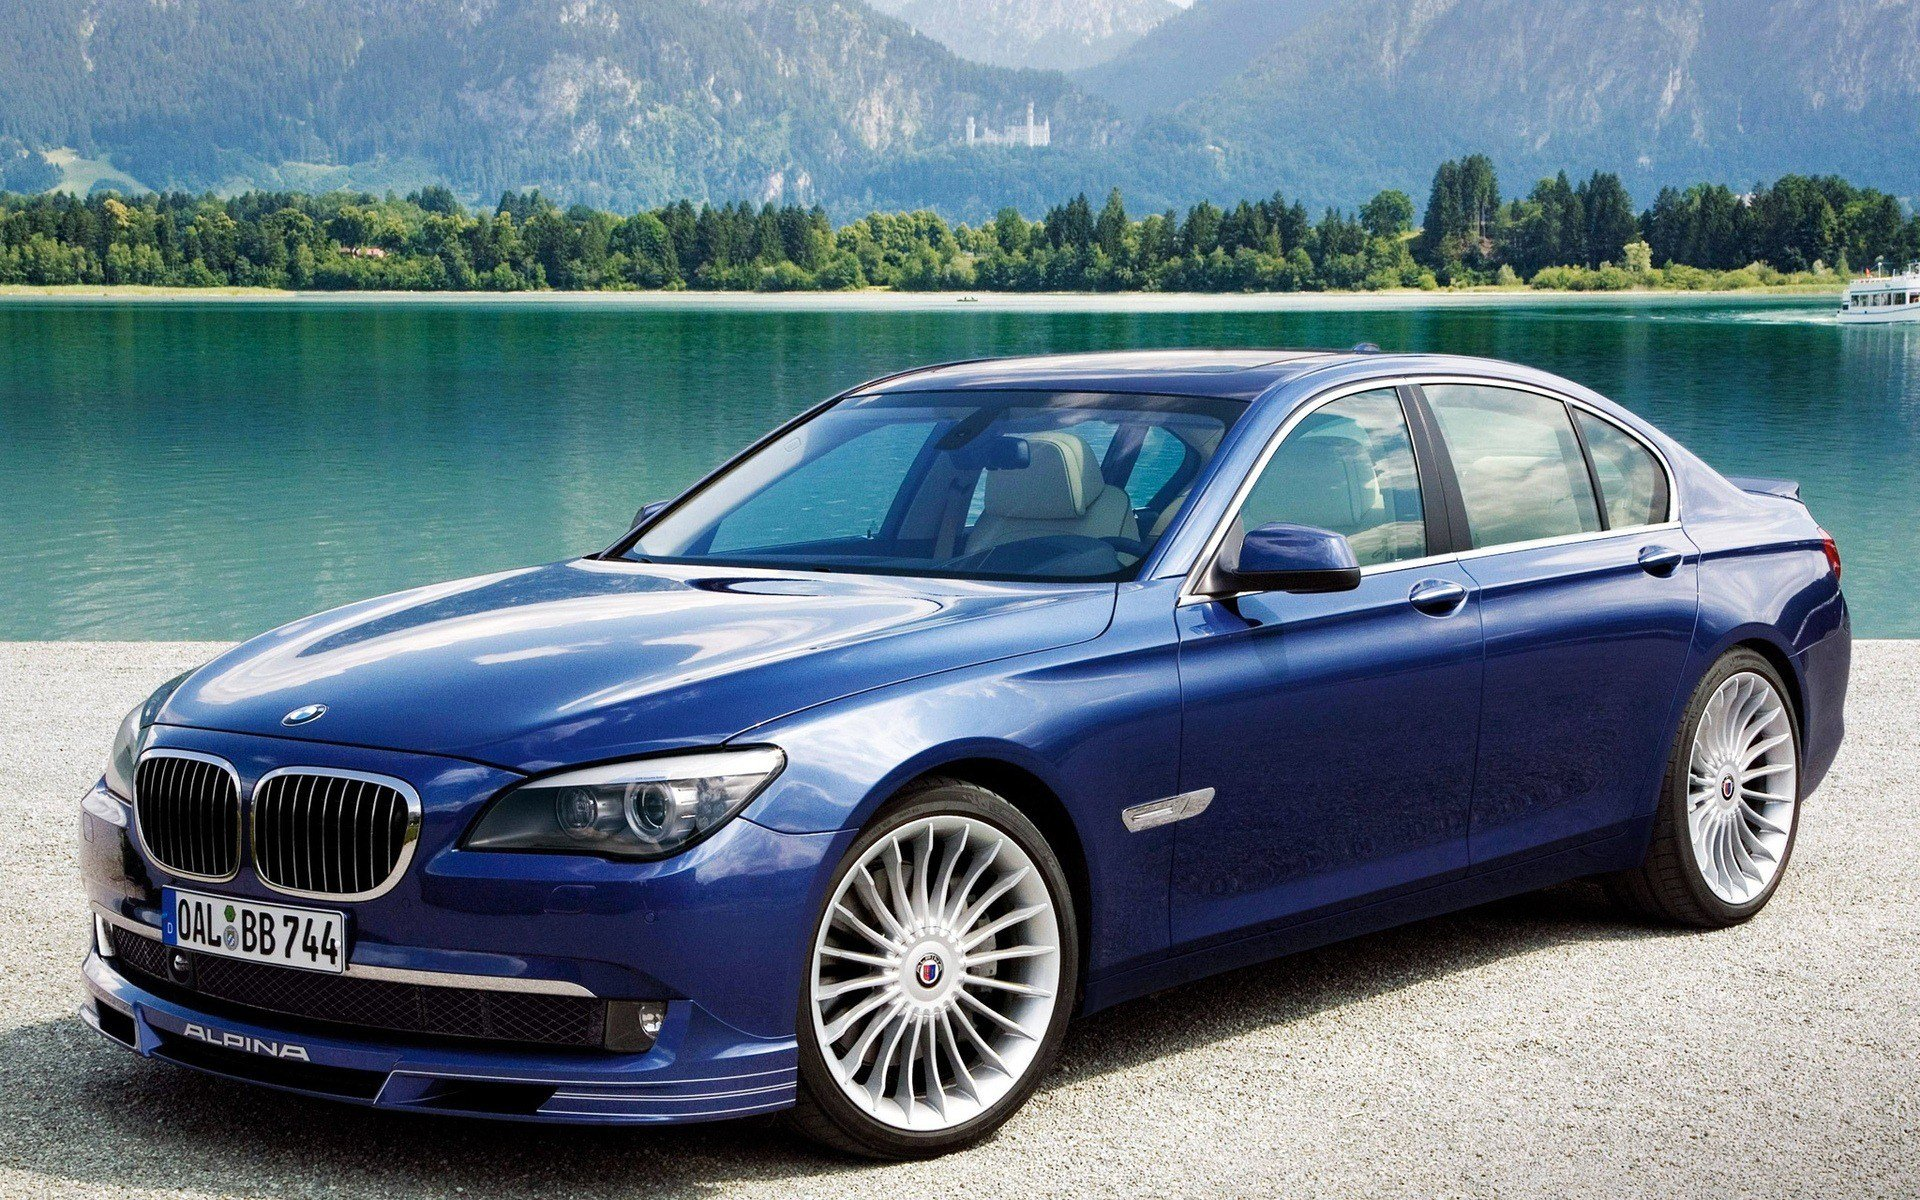 Latest Bmw Alpina Hd Wallpaper 1080P Wallpaper Wallpaperlepi Free Download